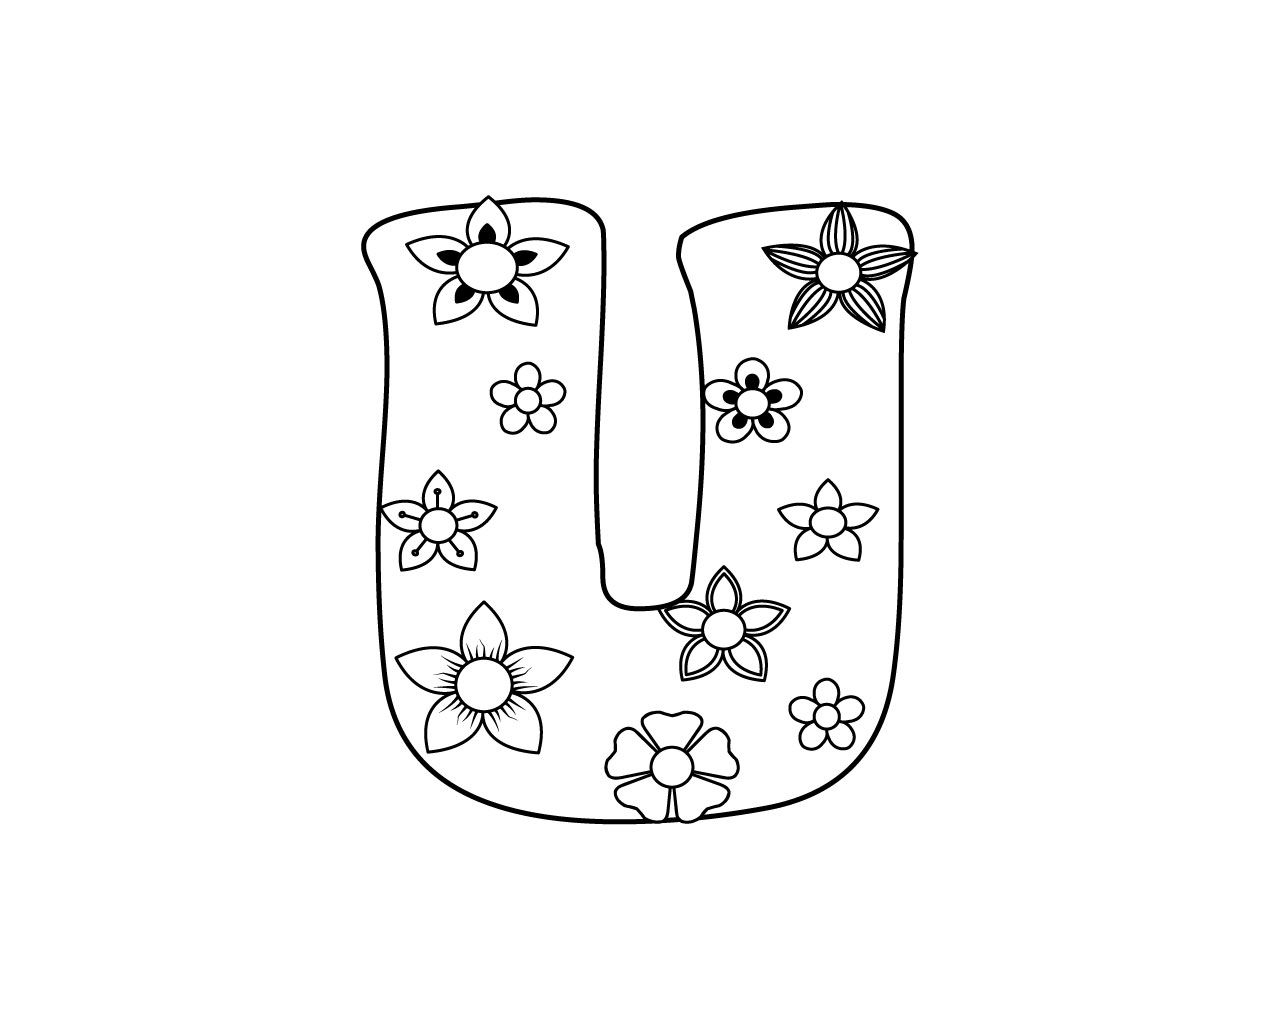 Letter U Coloring Page To Print Color To Coloring Pages Gives Great Relief So You Are Free To Download Coloring Pages To Print Coloring Pages Doodle Lettering